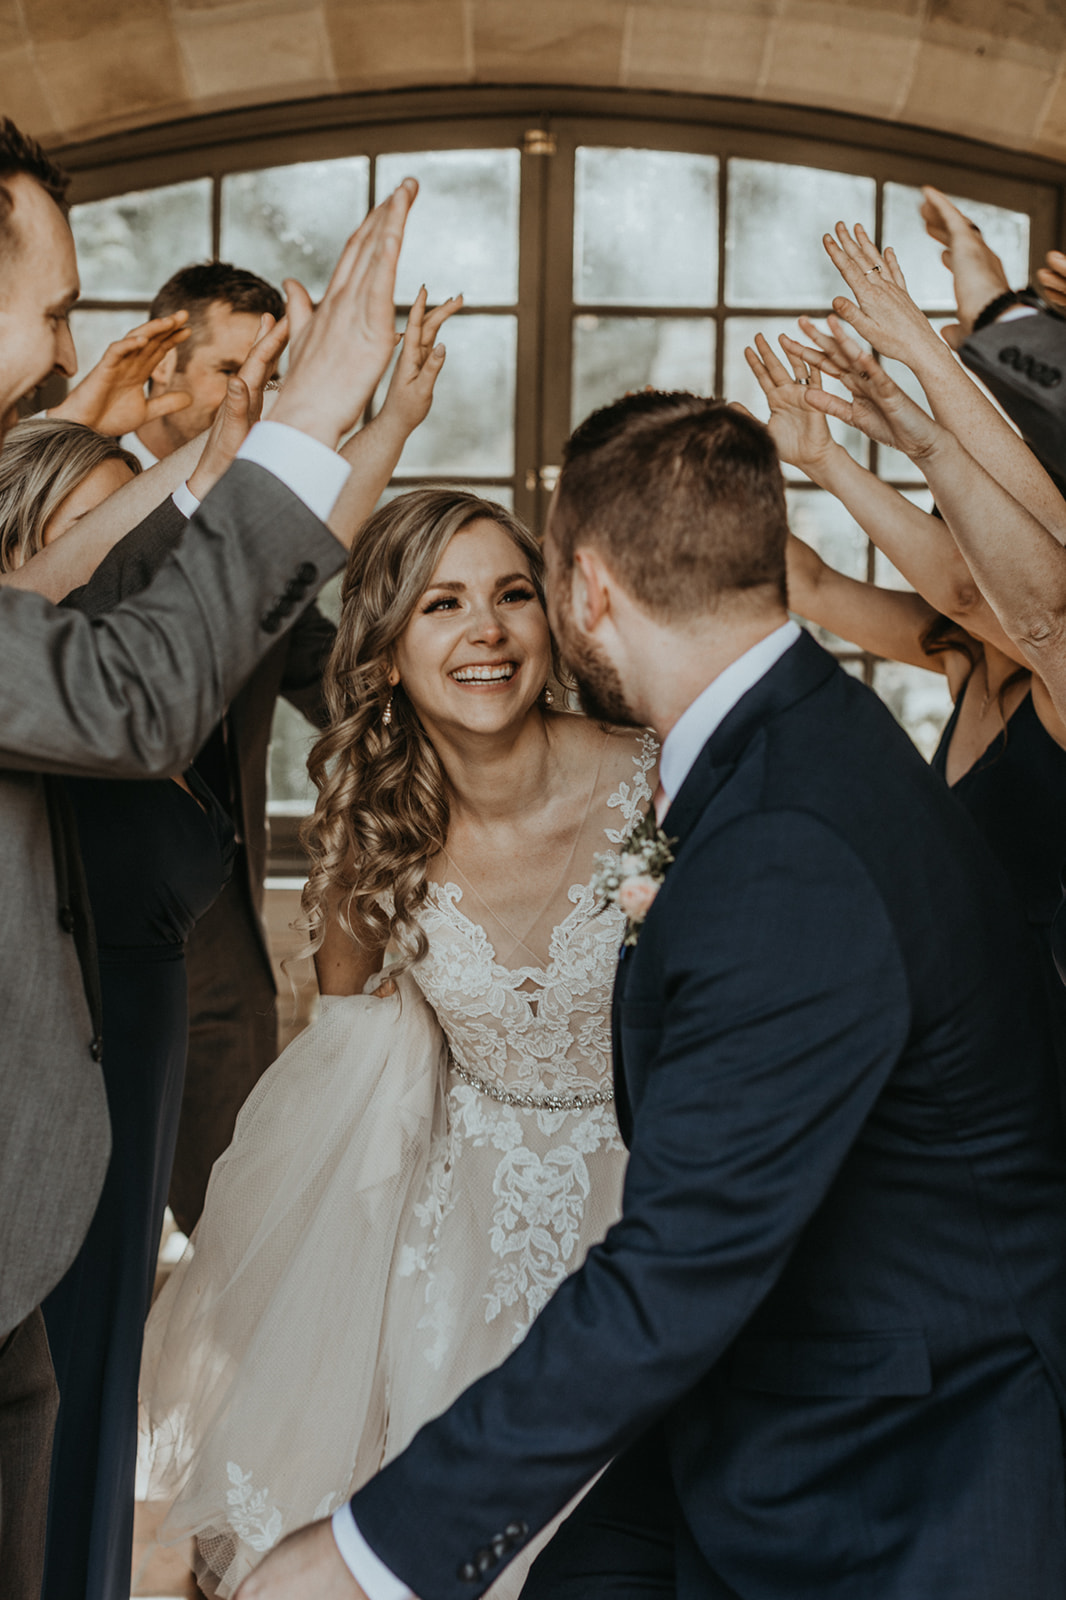 Bride with Makeup by Alexa smiles at groom as friends applaud on Vancouver Island